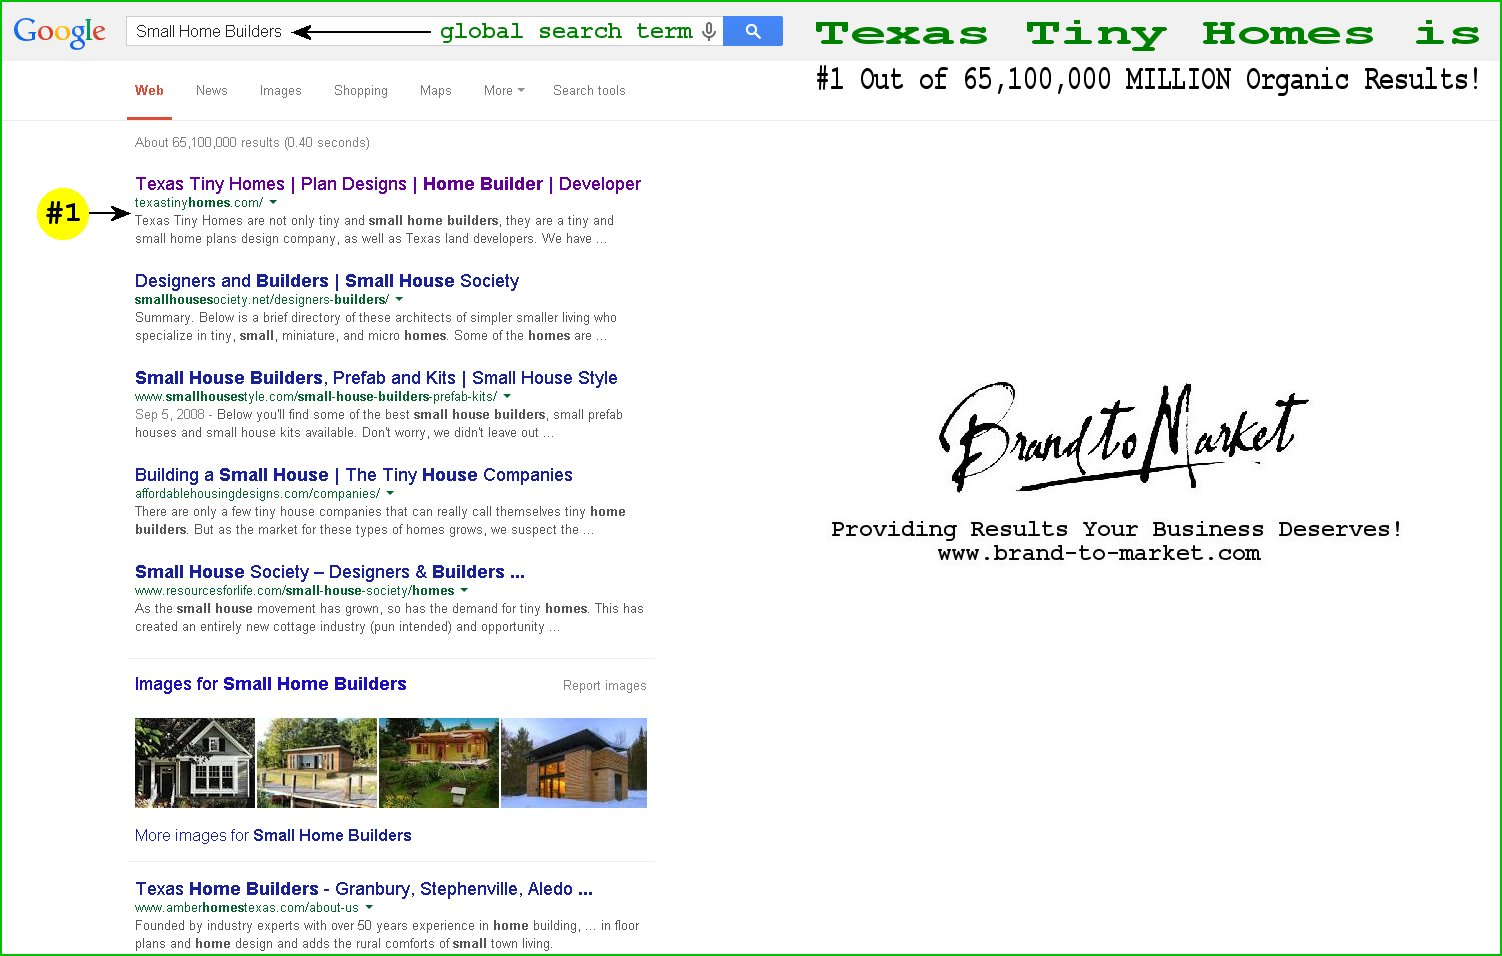 Google Results - Small Home Builders